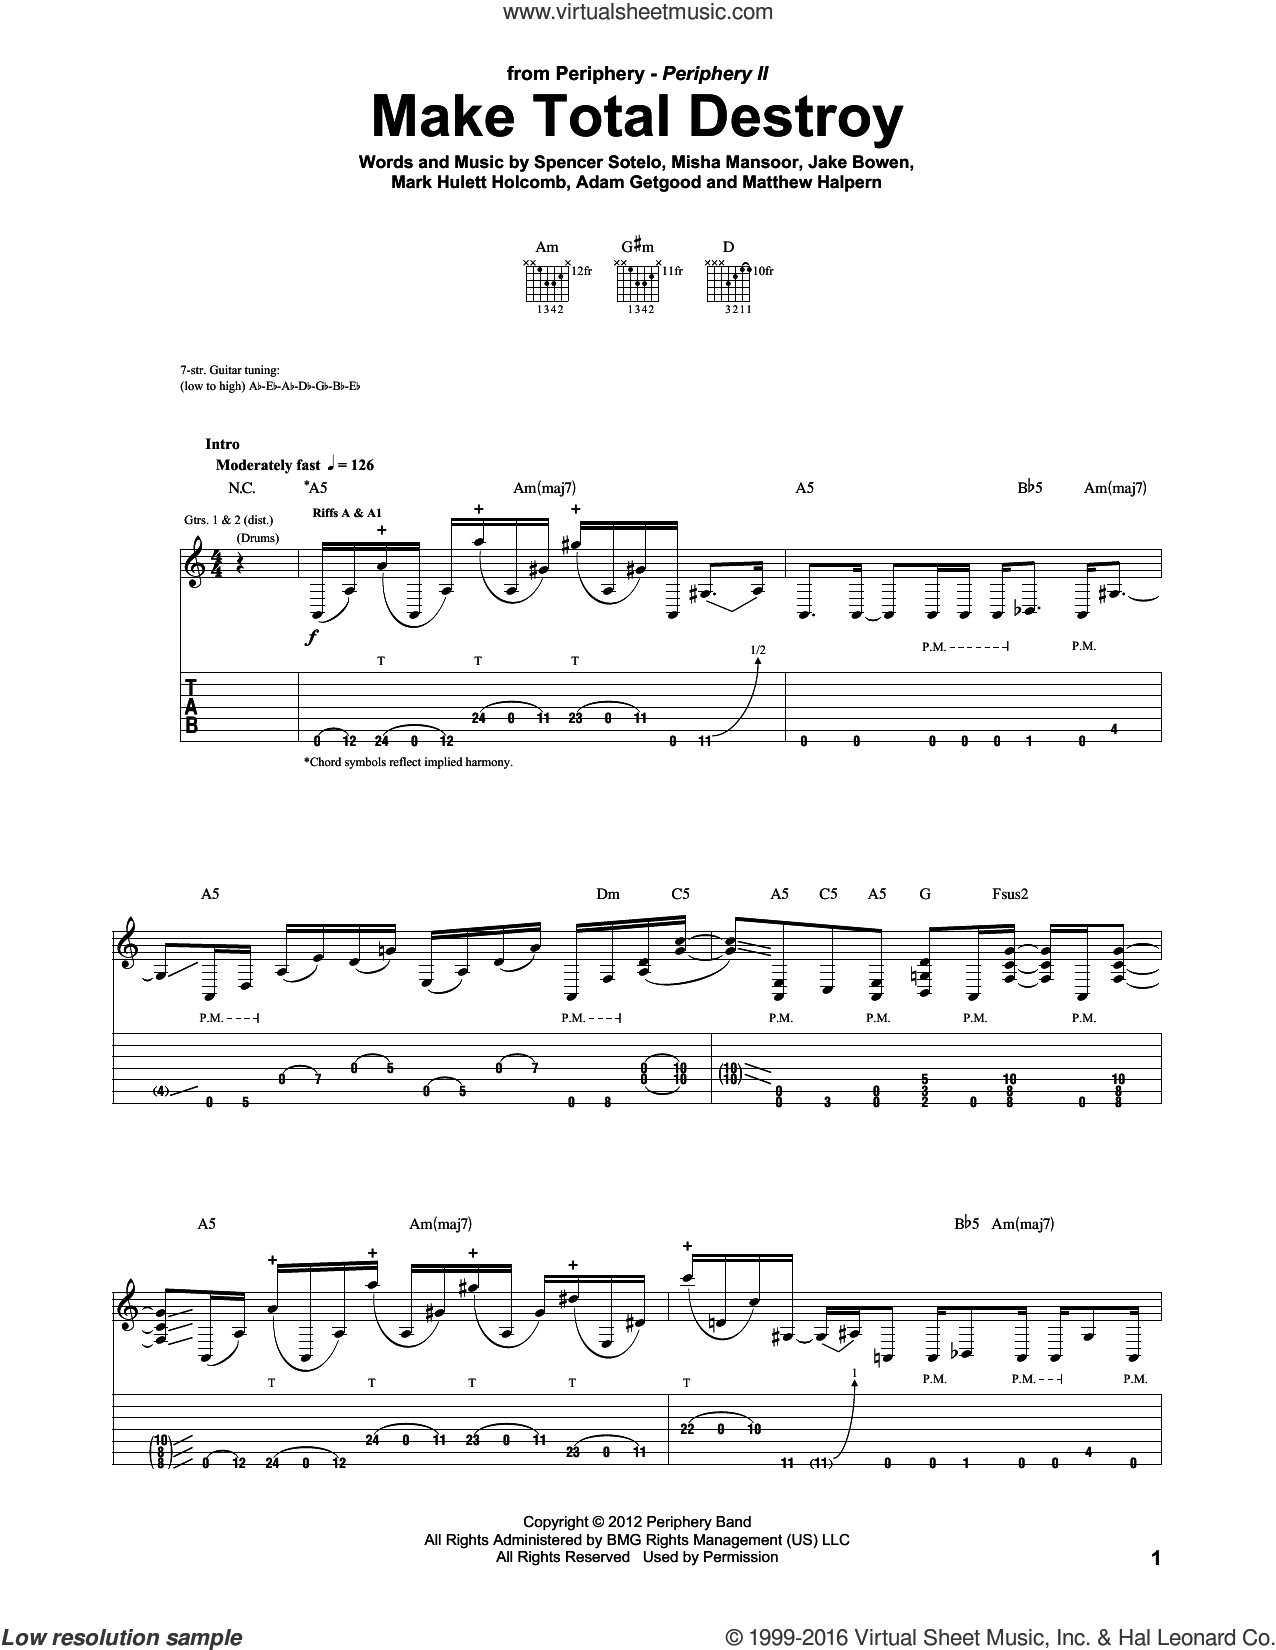 Make Total Destroy sheet music for guitar (tablature) by Periphery. Score Image Preview.